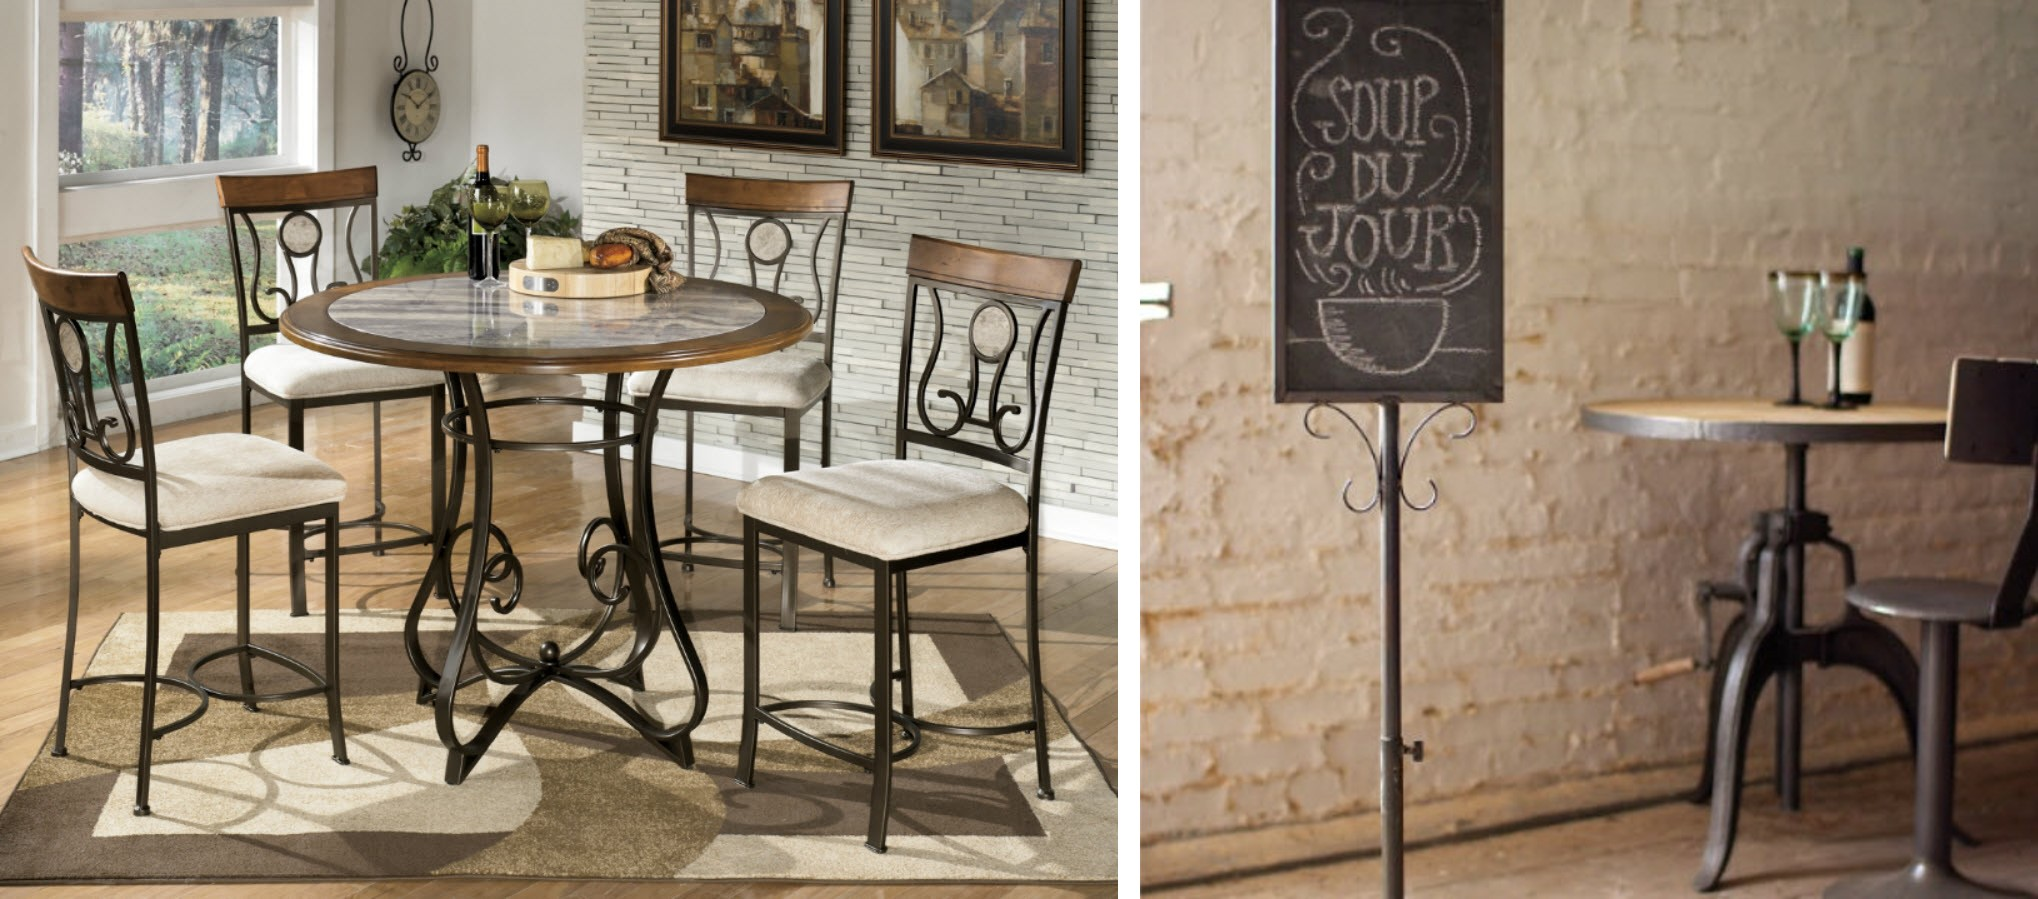 Space Better Served Ways To Repurpose Your Dining Room